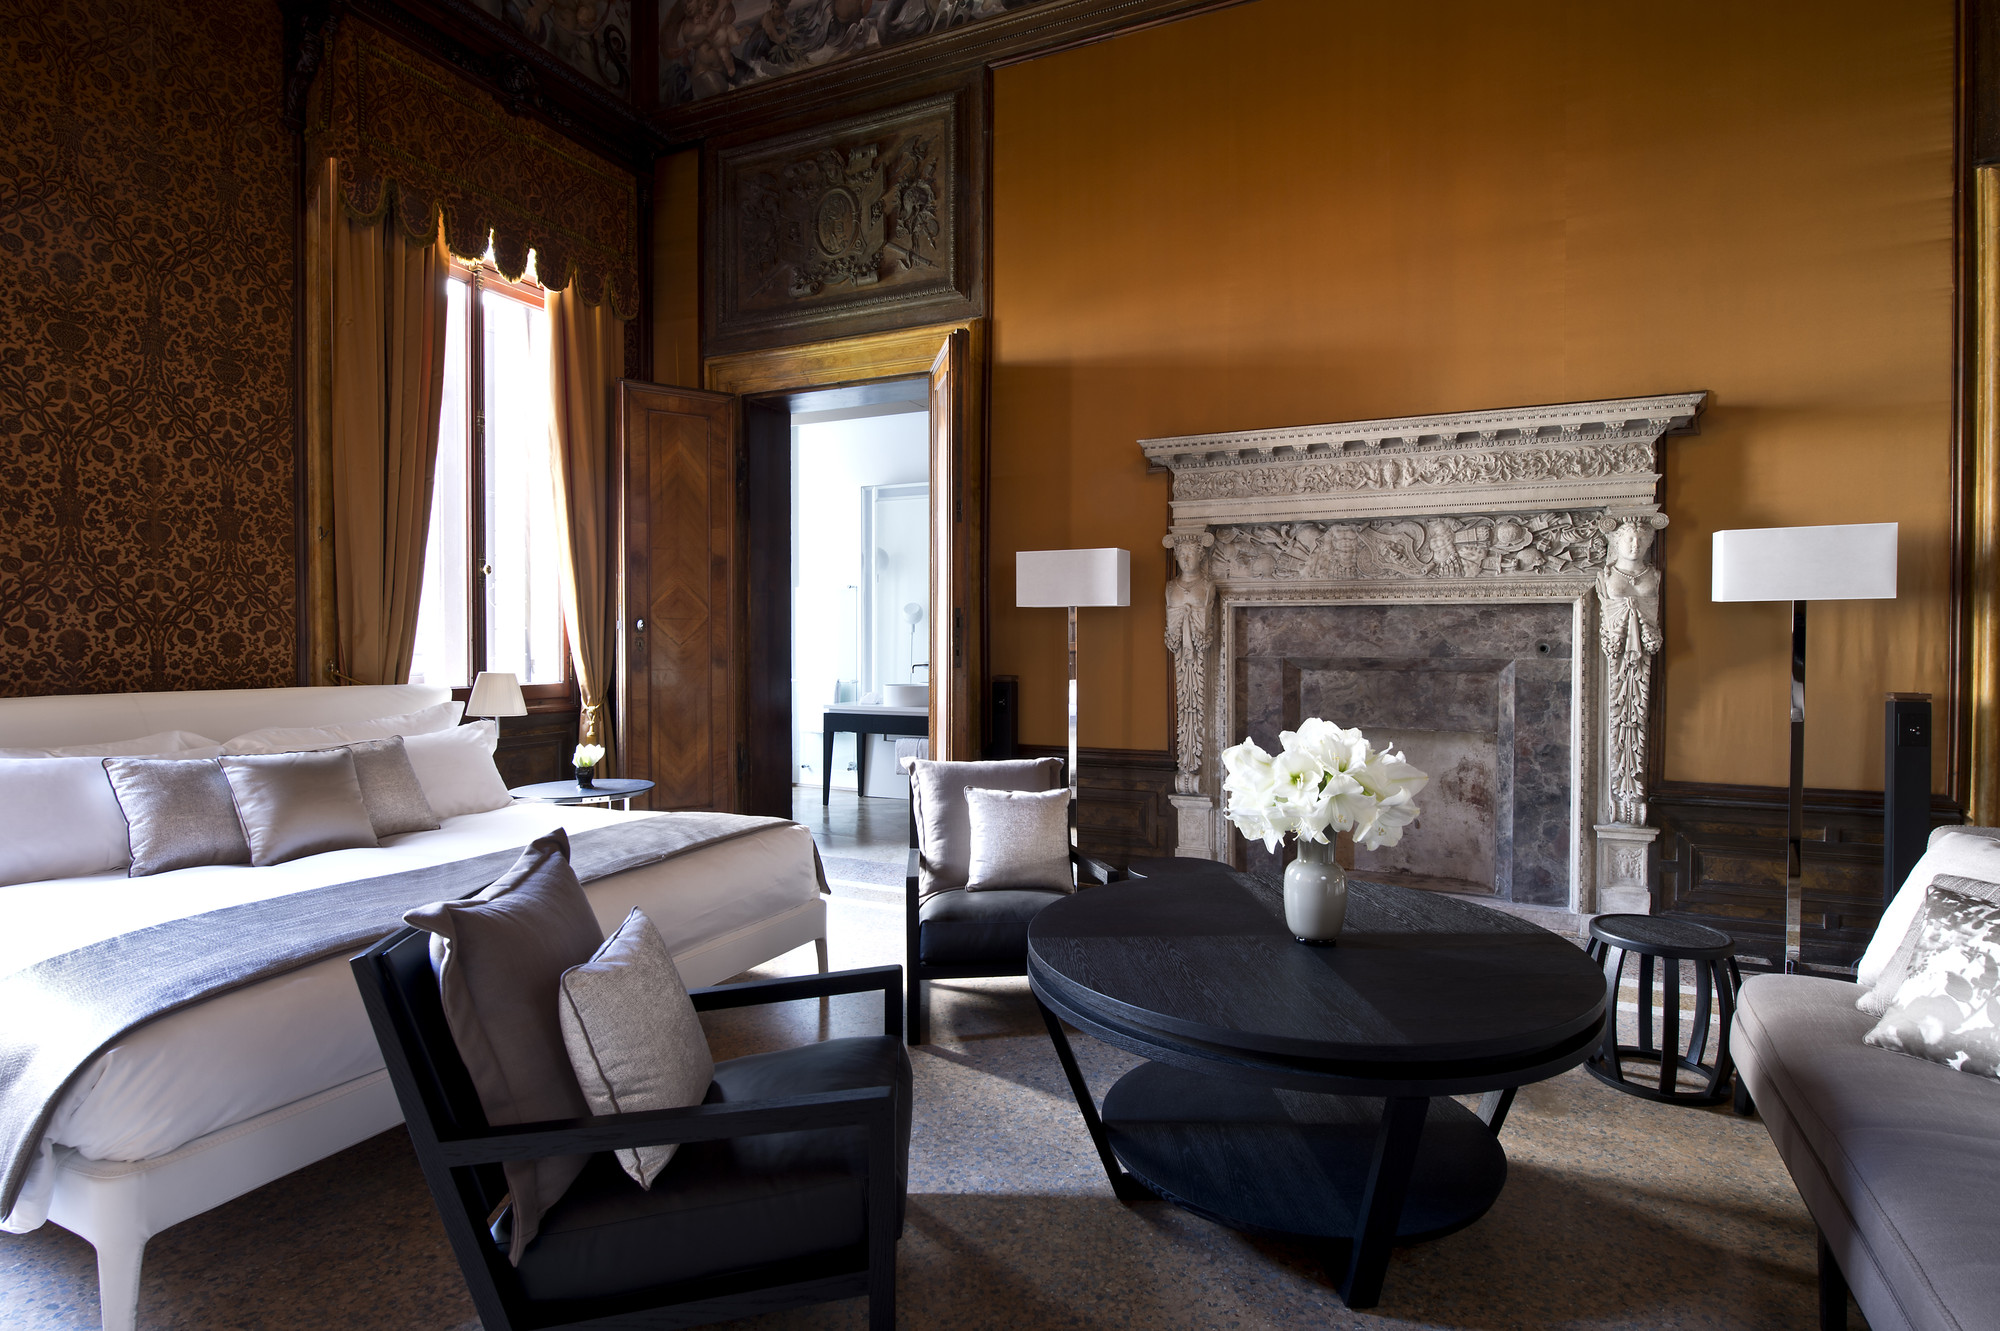 Best new hotels that opened in 2013 the luxury travel expert for Hotel design italie